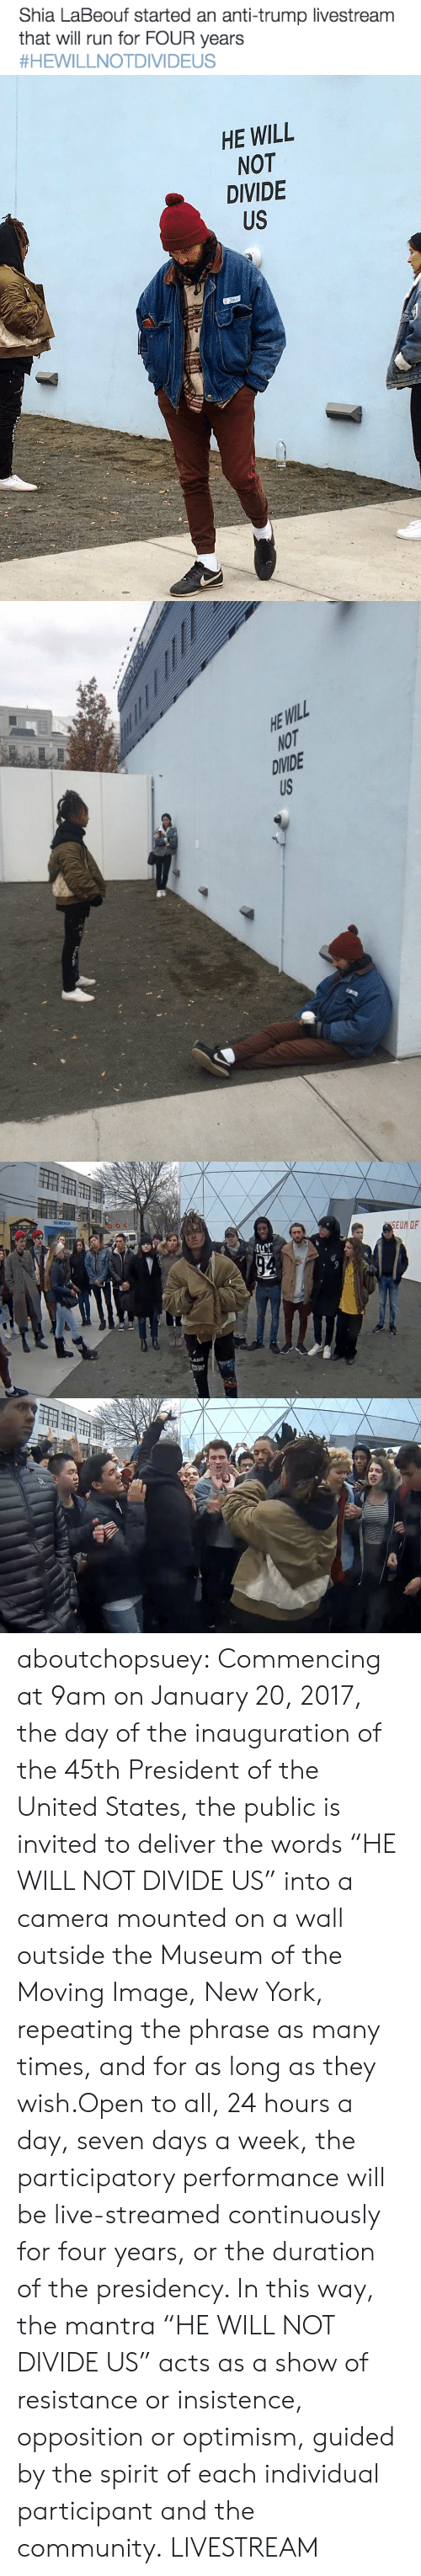 """Community, New York, and Run: Shia LaBeouf started an anti-trump livestream  that will run for FOUR years  #HEWILLNOTDIVIDEUS   HE WILL  NOT  DIVIDE  US   HE WILL  NOT  DIVIDE aboutchopsuey:  Commencing at 9am on January 20, 2017, the day of the inauguration of the 45th President of the United States, the public is invited to deliver the words """"HE WILL NOT DIVIDE US"""" into a camera mounted on a wall outside the Museum of the Moving Image, New York, repeating the phrase as many times, and for as long as they wish.Open to all, 24 hours a day, seven days a week, the participatory performance will be live-streamed continuously for four years, or the duration of the presidency. In this way, the mantra """"HE WILL NOT DIVIDE US"""" acts as a show of resistance or insistence, opposition or optimism, guided by the spirit of each individual participant and the community. LIVESTREAM"""